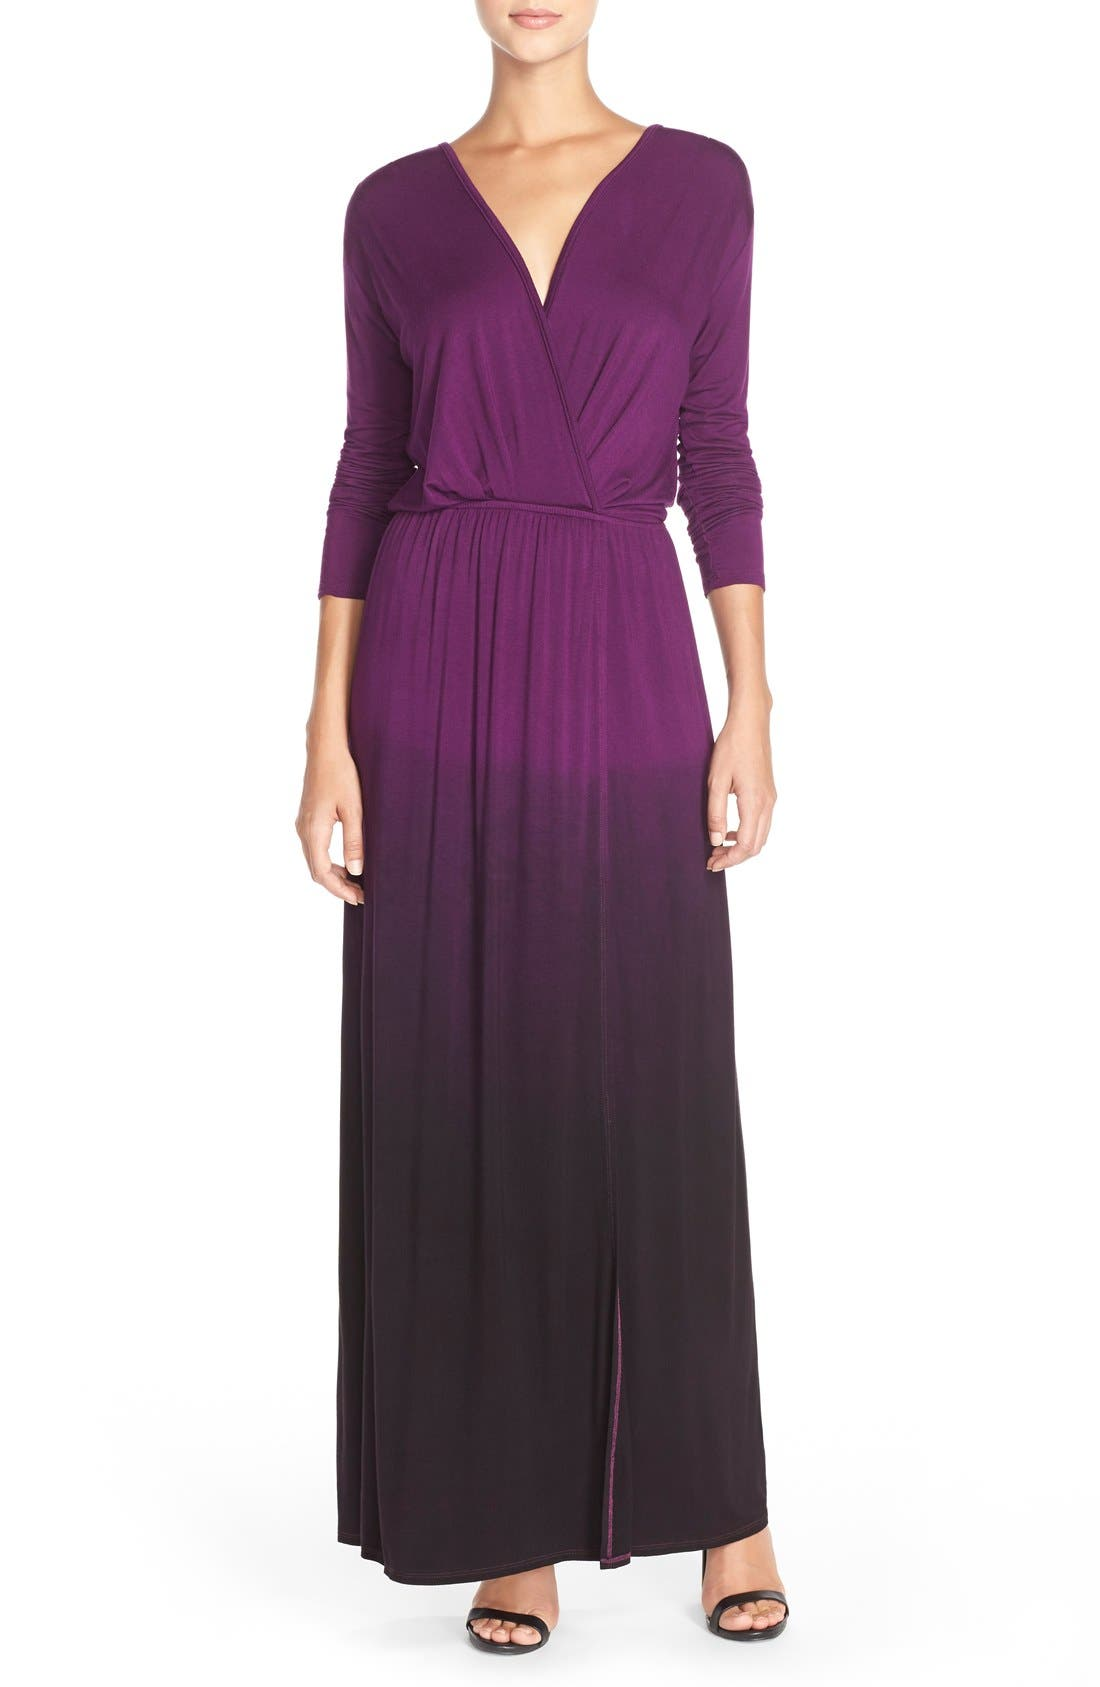 Tie Dye Faux Wrap Maxi Dress,                         Main,                         color, PURPLE/ BLACK OMBRE